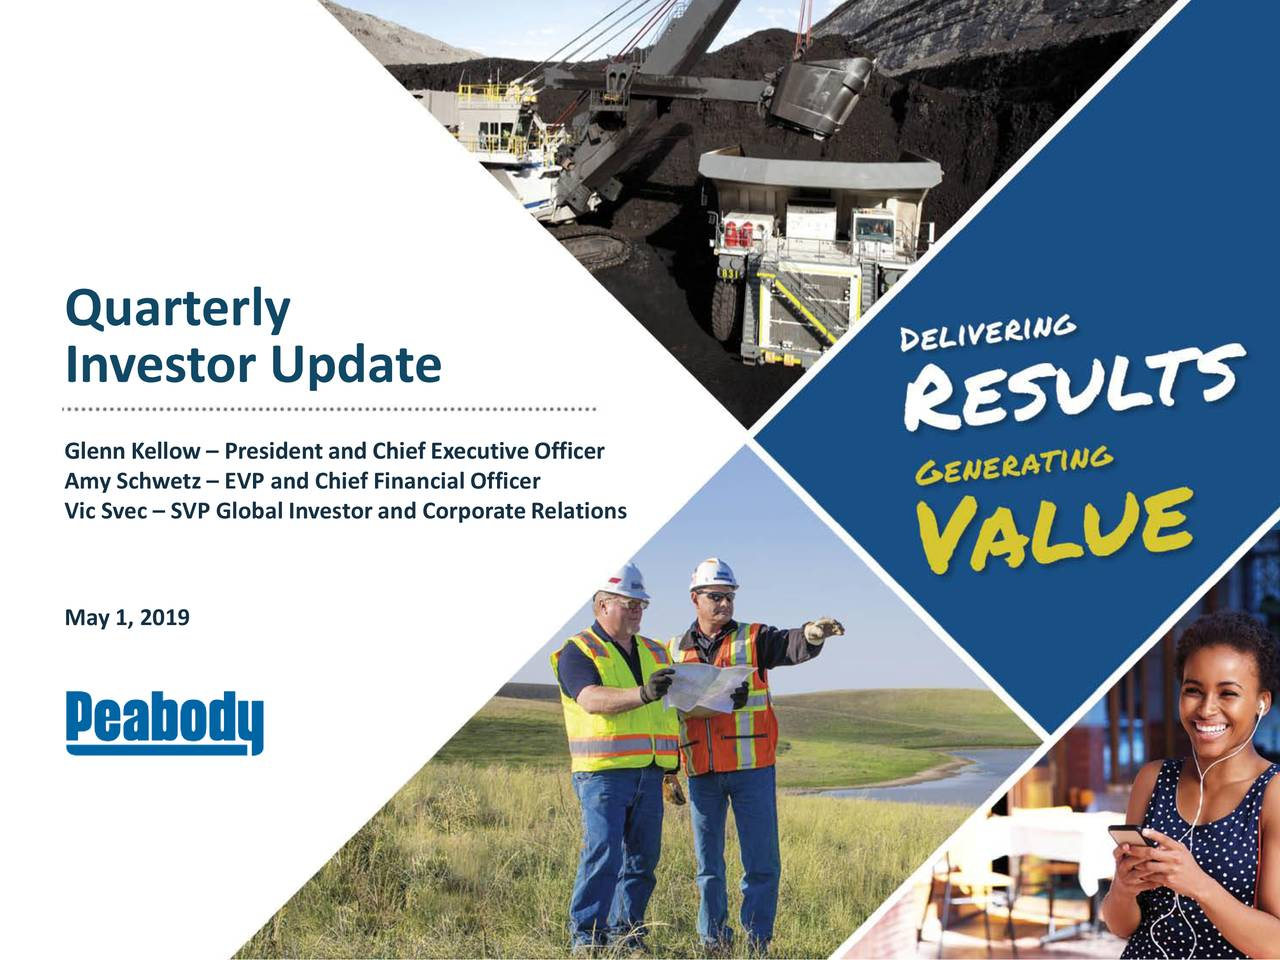 Investor Update GlennKellow – Presidentand Chief Executive Officer Amy Schwetz – EVP and Chief Financial Officer Vic Svec – SVP Global Investor and CorporateRelations May 1, 2019